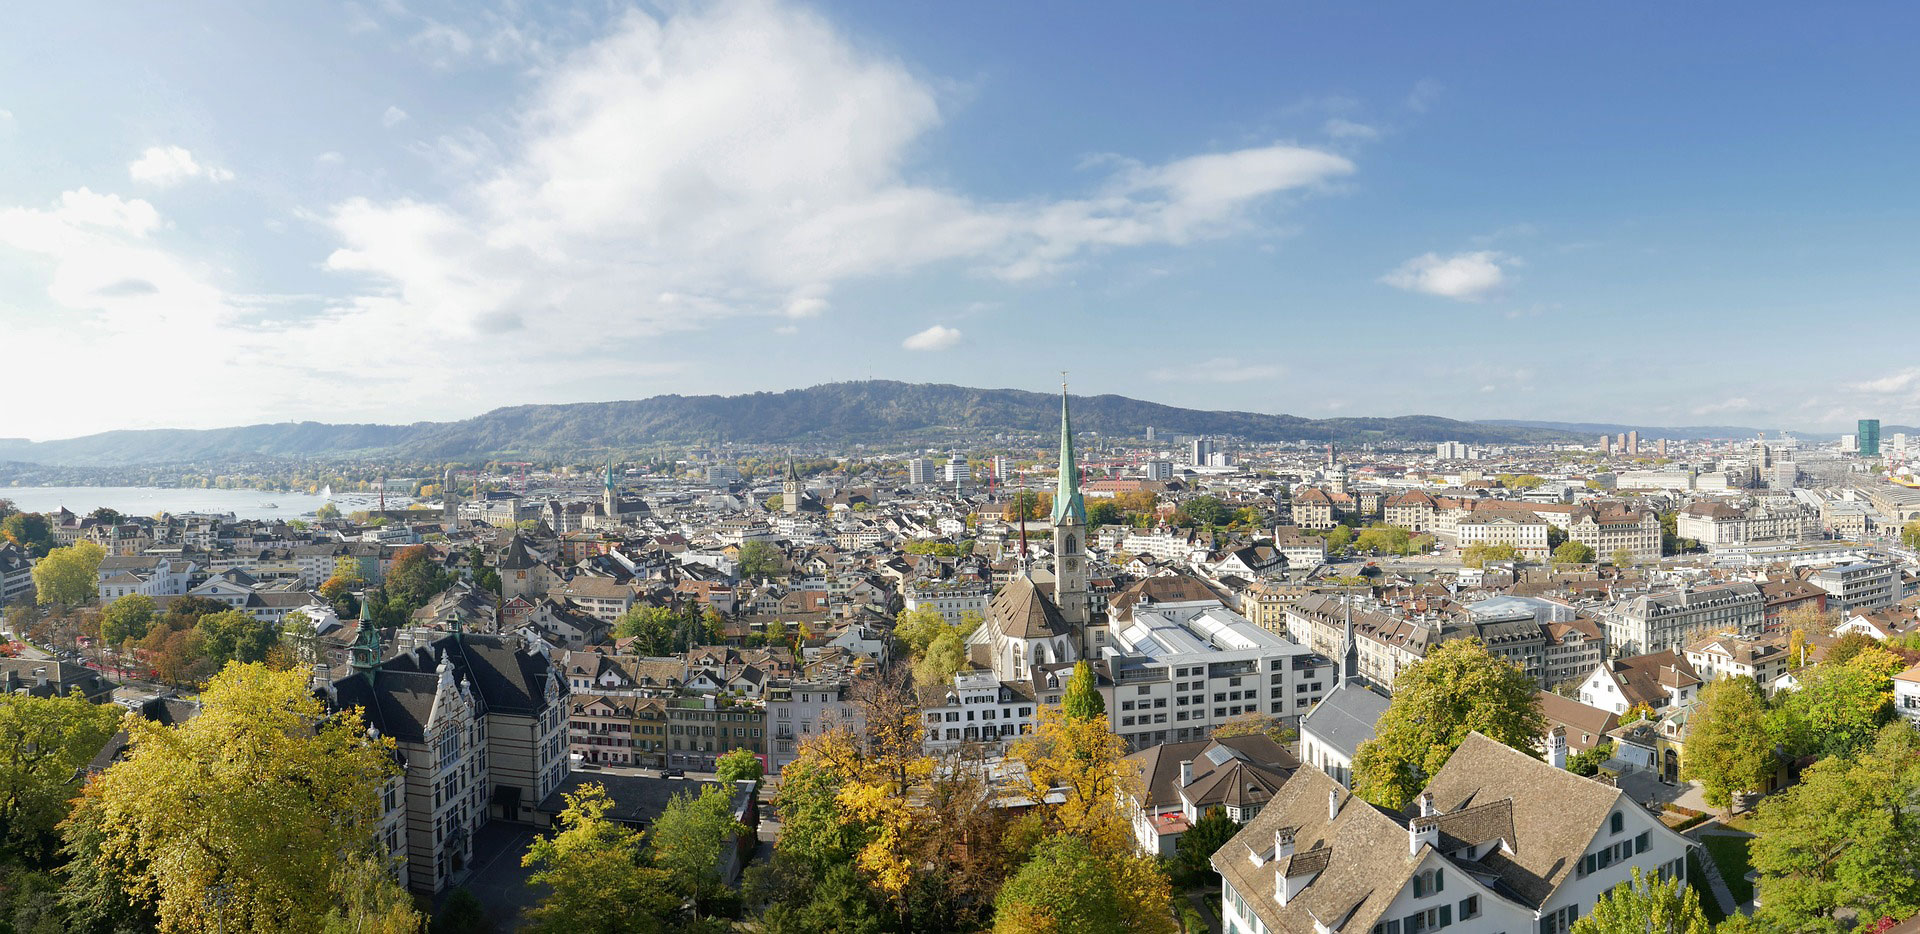 Does the population of Zurich waste too much water?